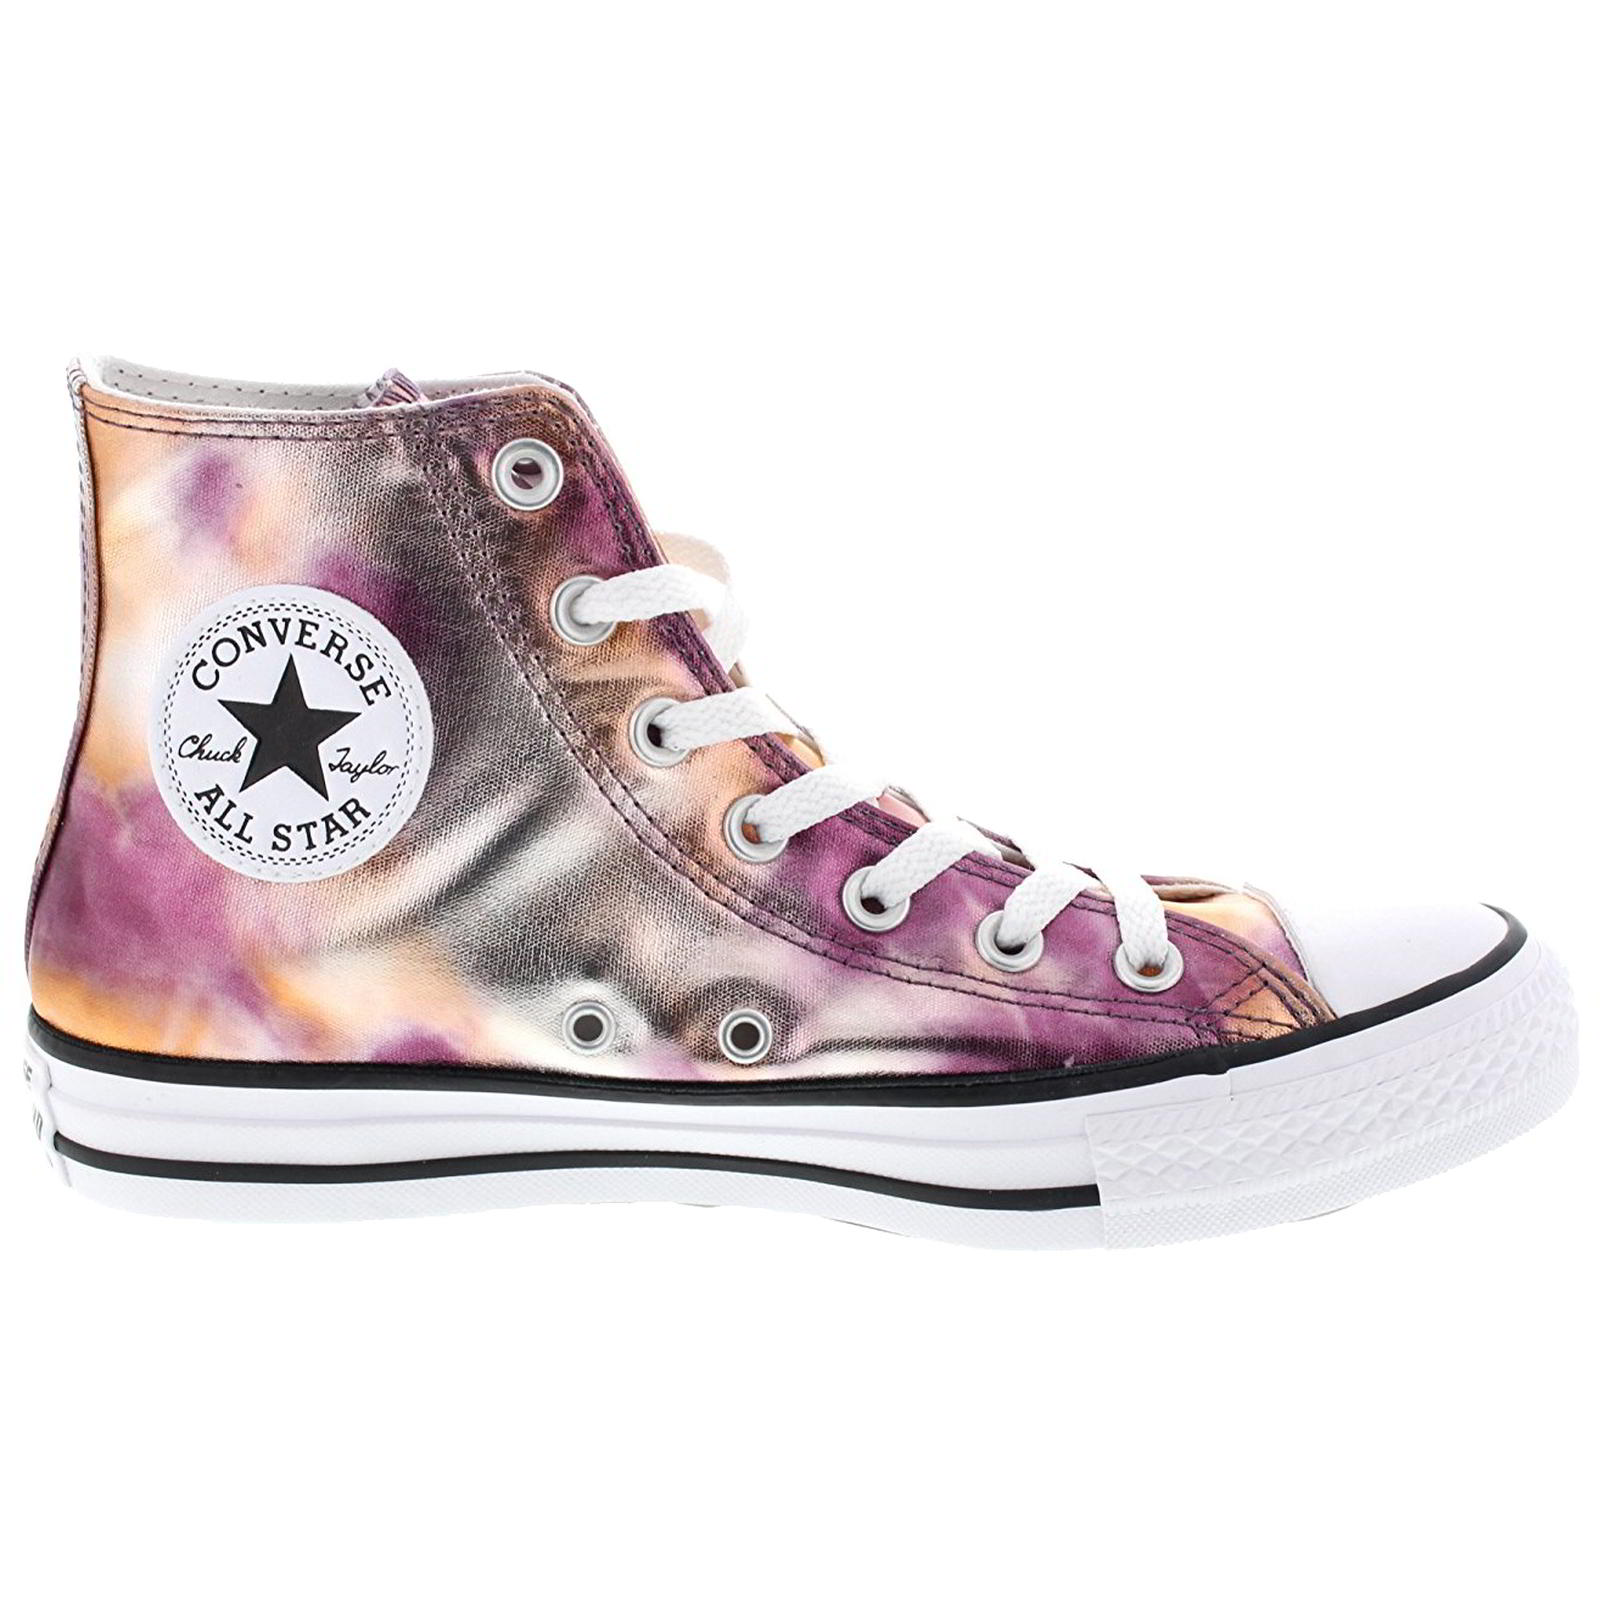 a9ccc262873c Details about Converse All Star Hi Womens Ladies Canvas High Top Trainers  Shoes Size 4-7